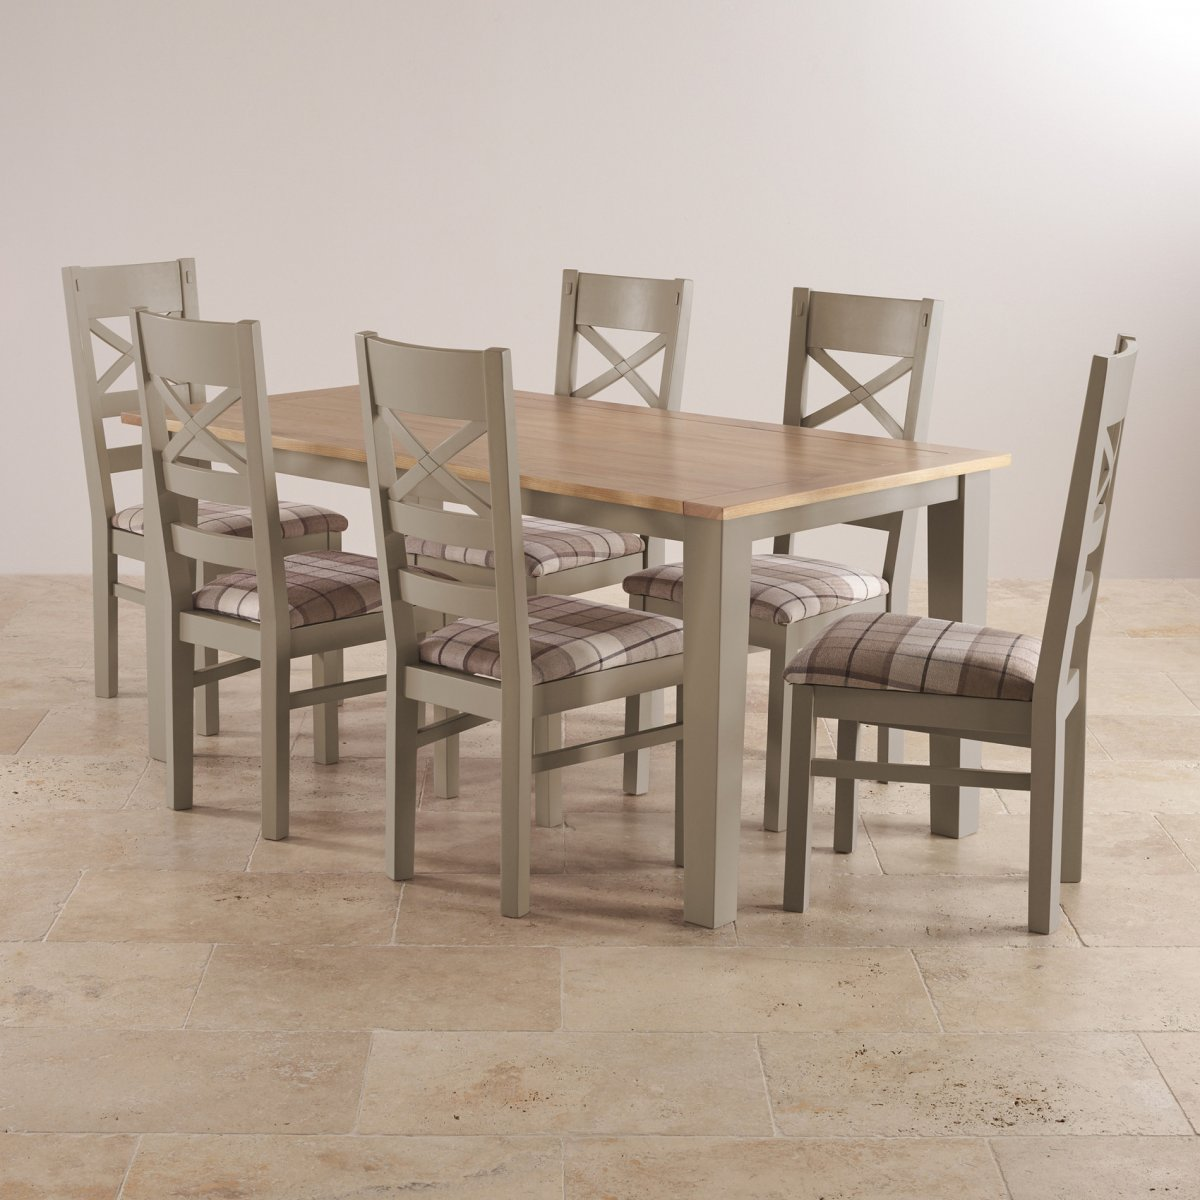 dining room furniture uk stores. custom delivery autumn monday st ives natural oak and light grey painted 5ft 6\ dining room furniture uk stores